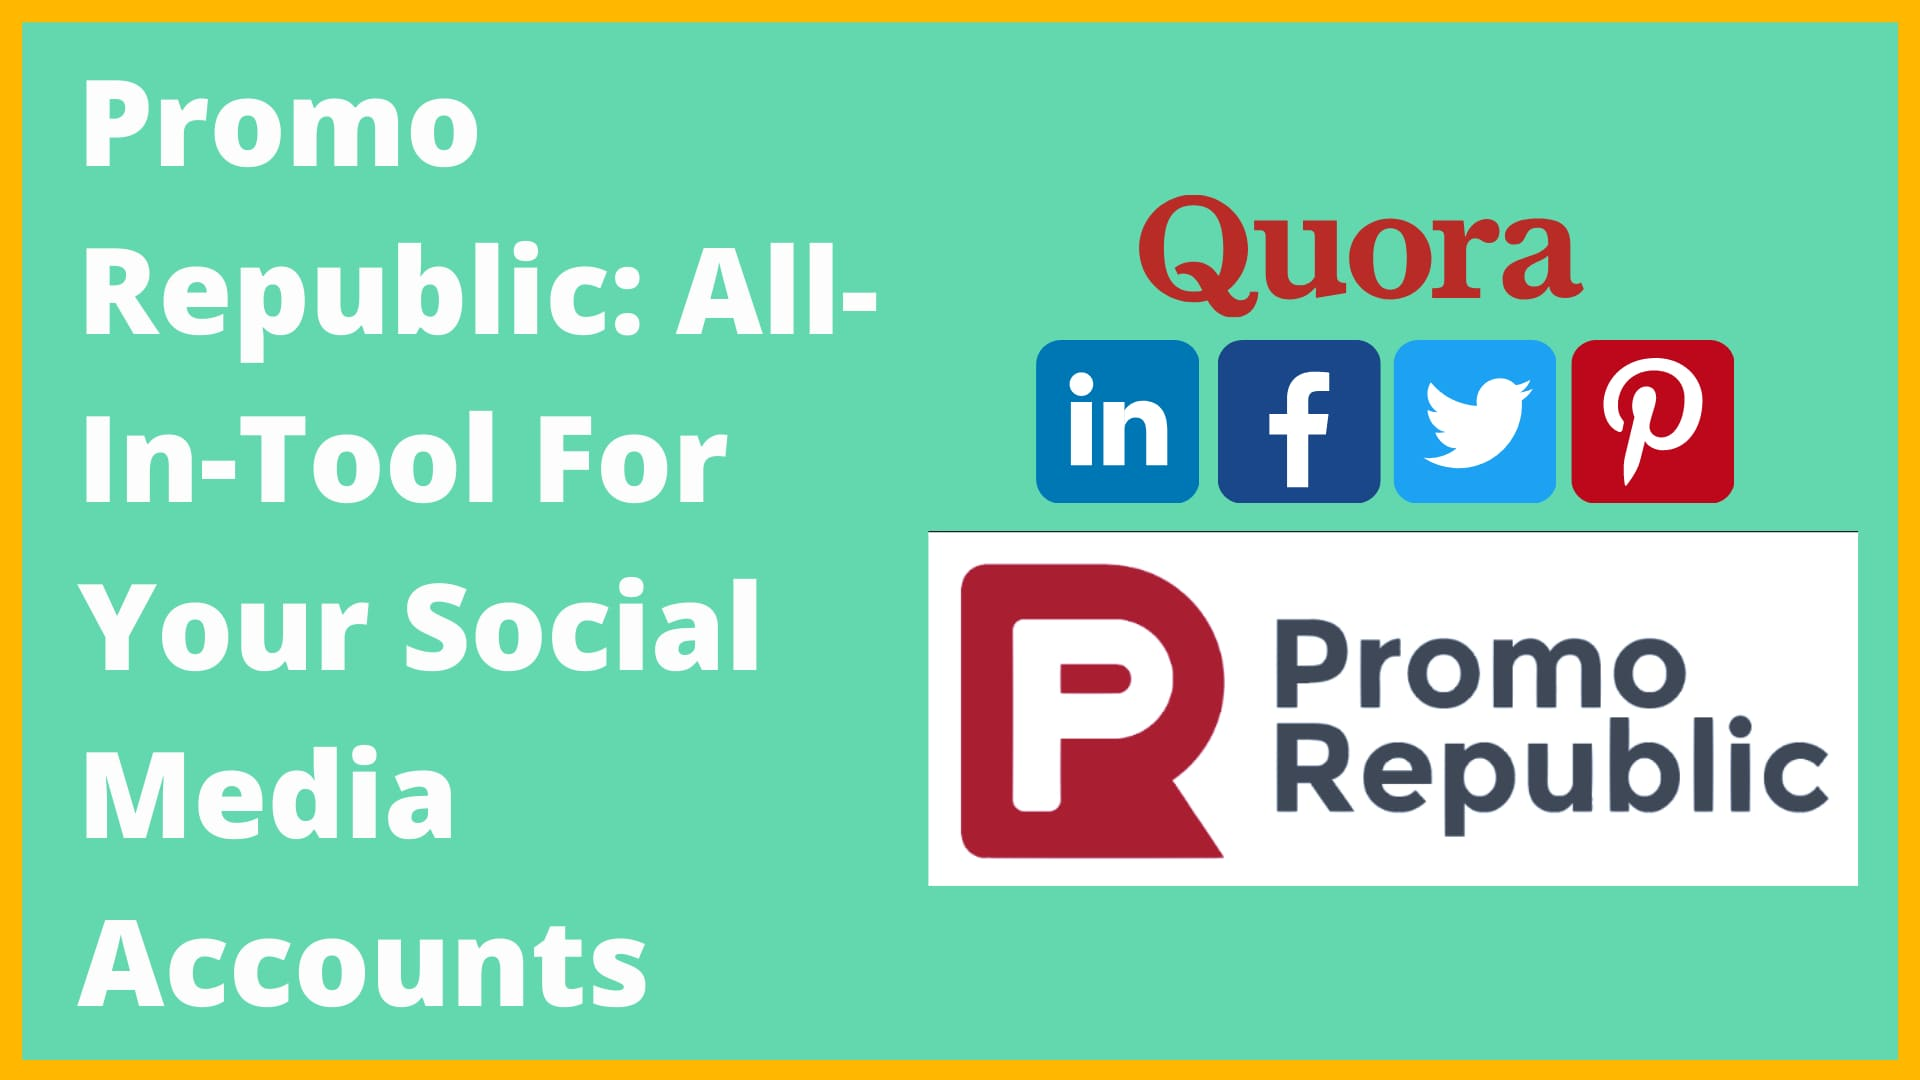 Promo Republic: All-In-One Tool for Your Social Media Accounts